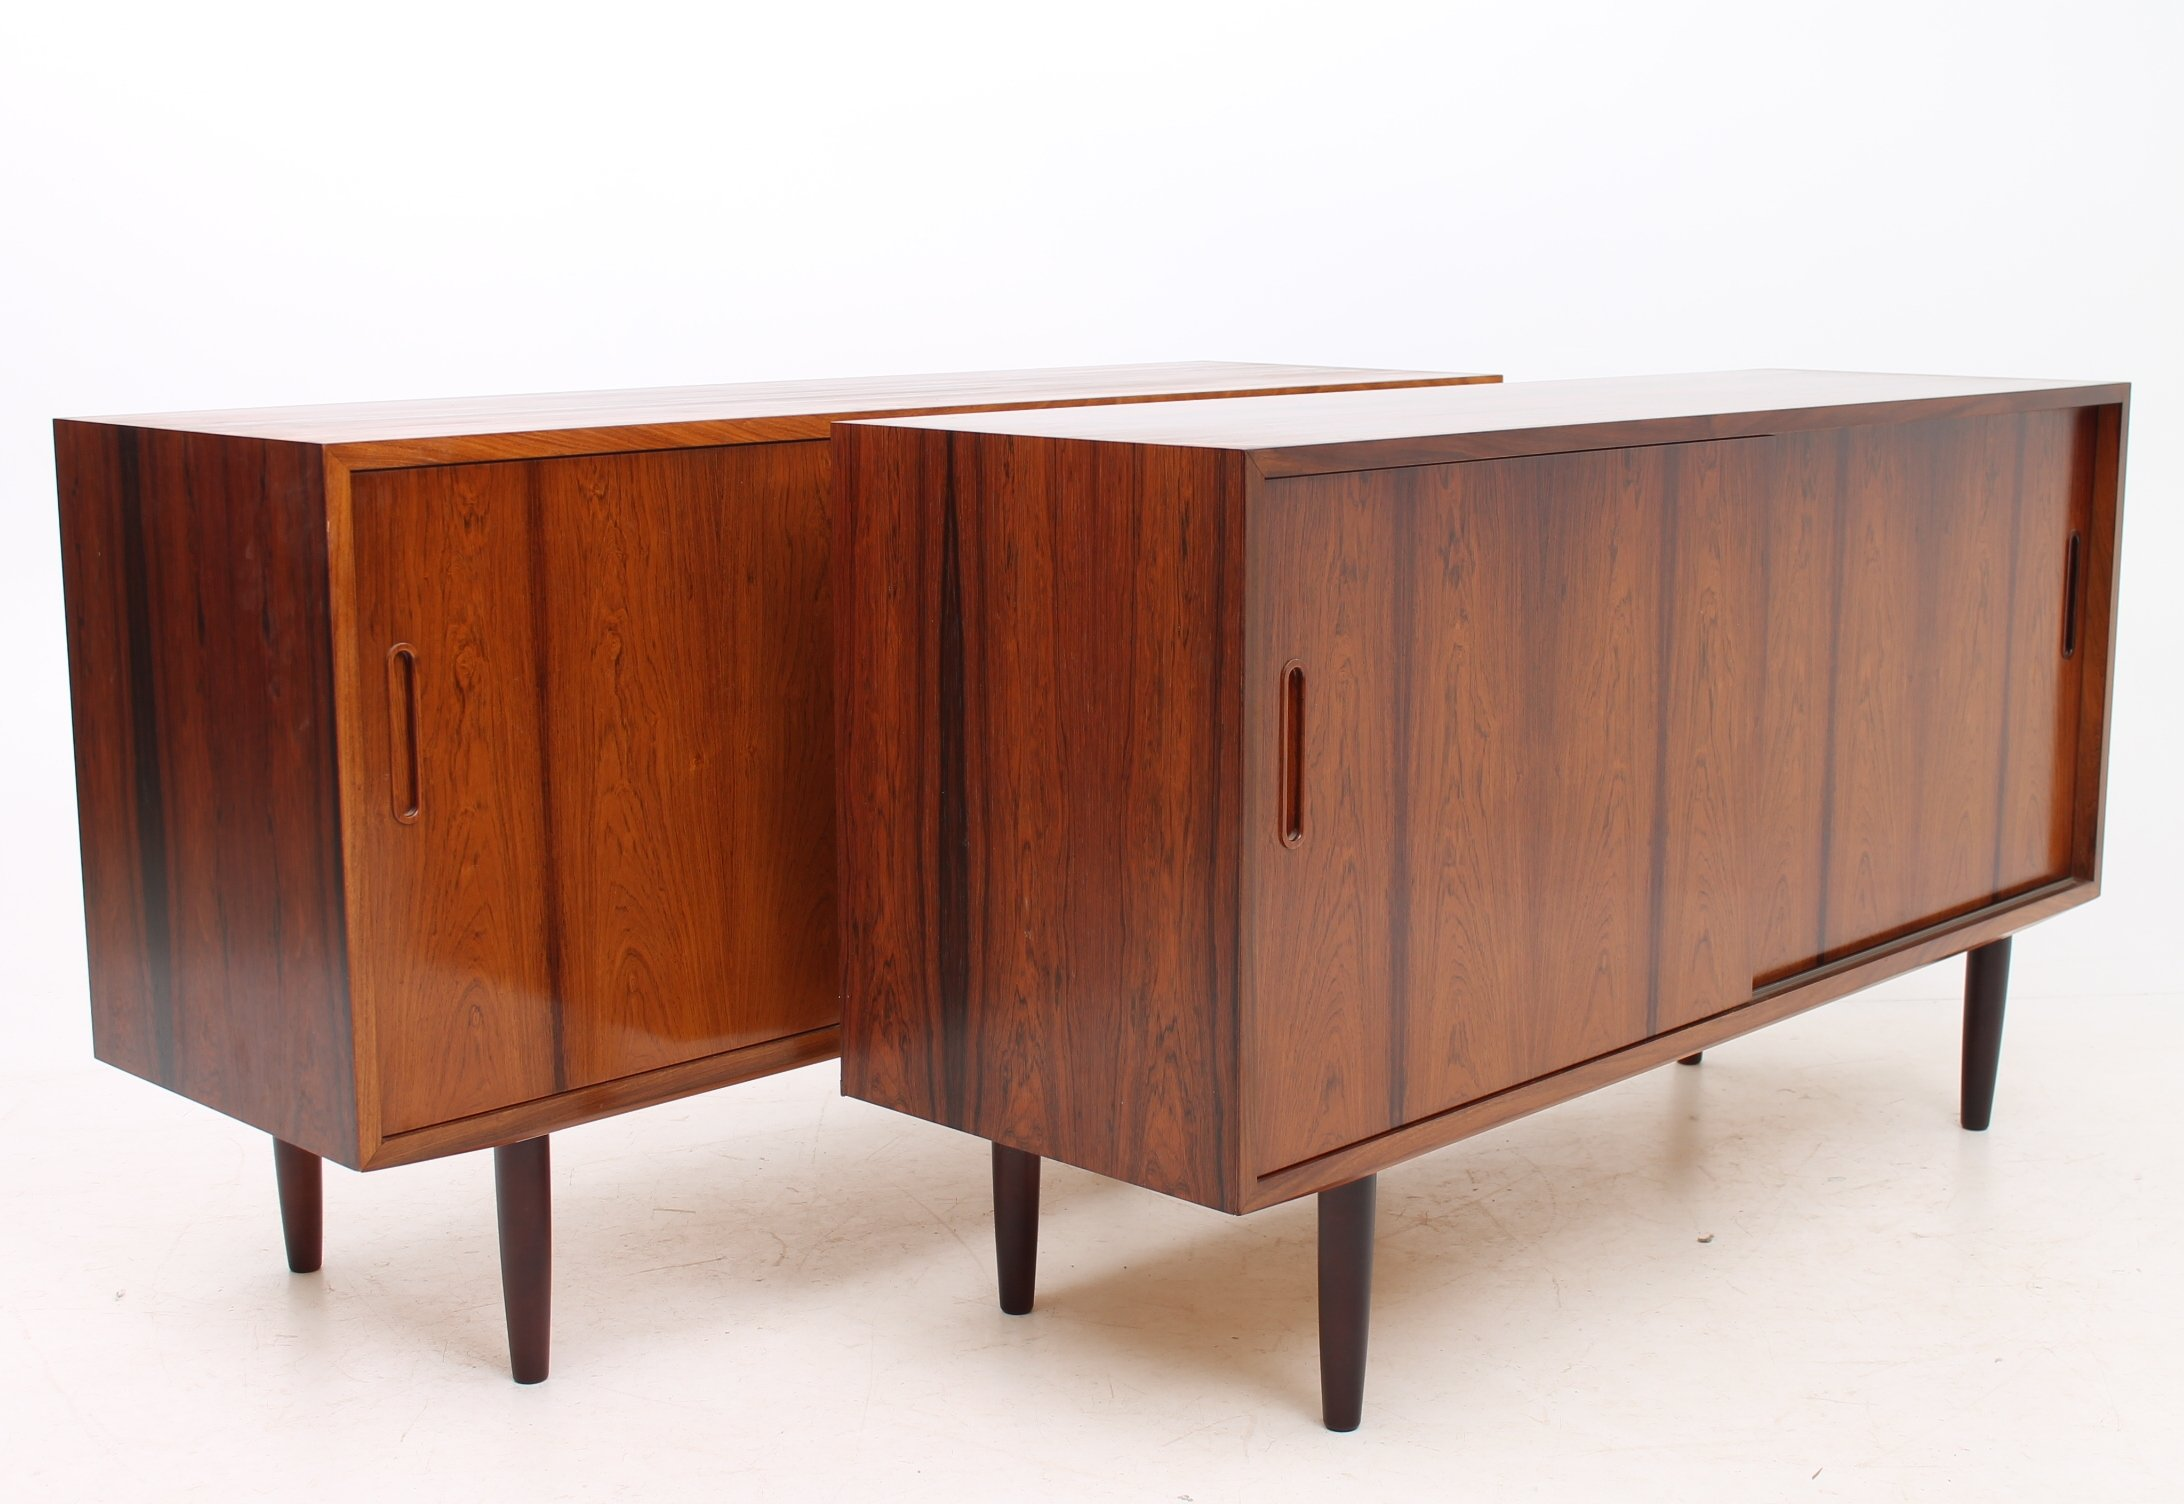 set of 2 sideboards from the sixties by poul hundevad for. Black Bedroom Furniture Sets. Home Design Ideas